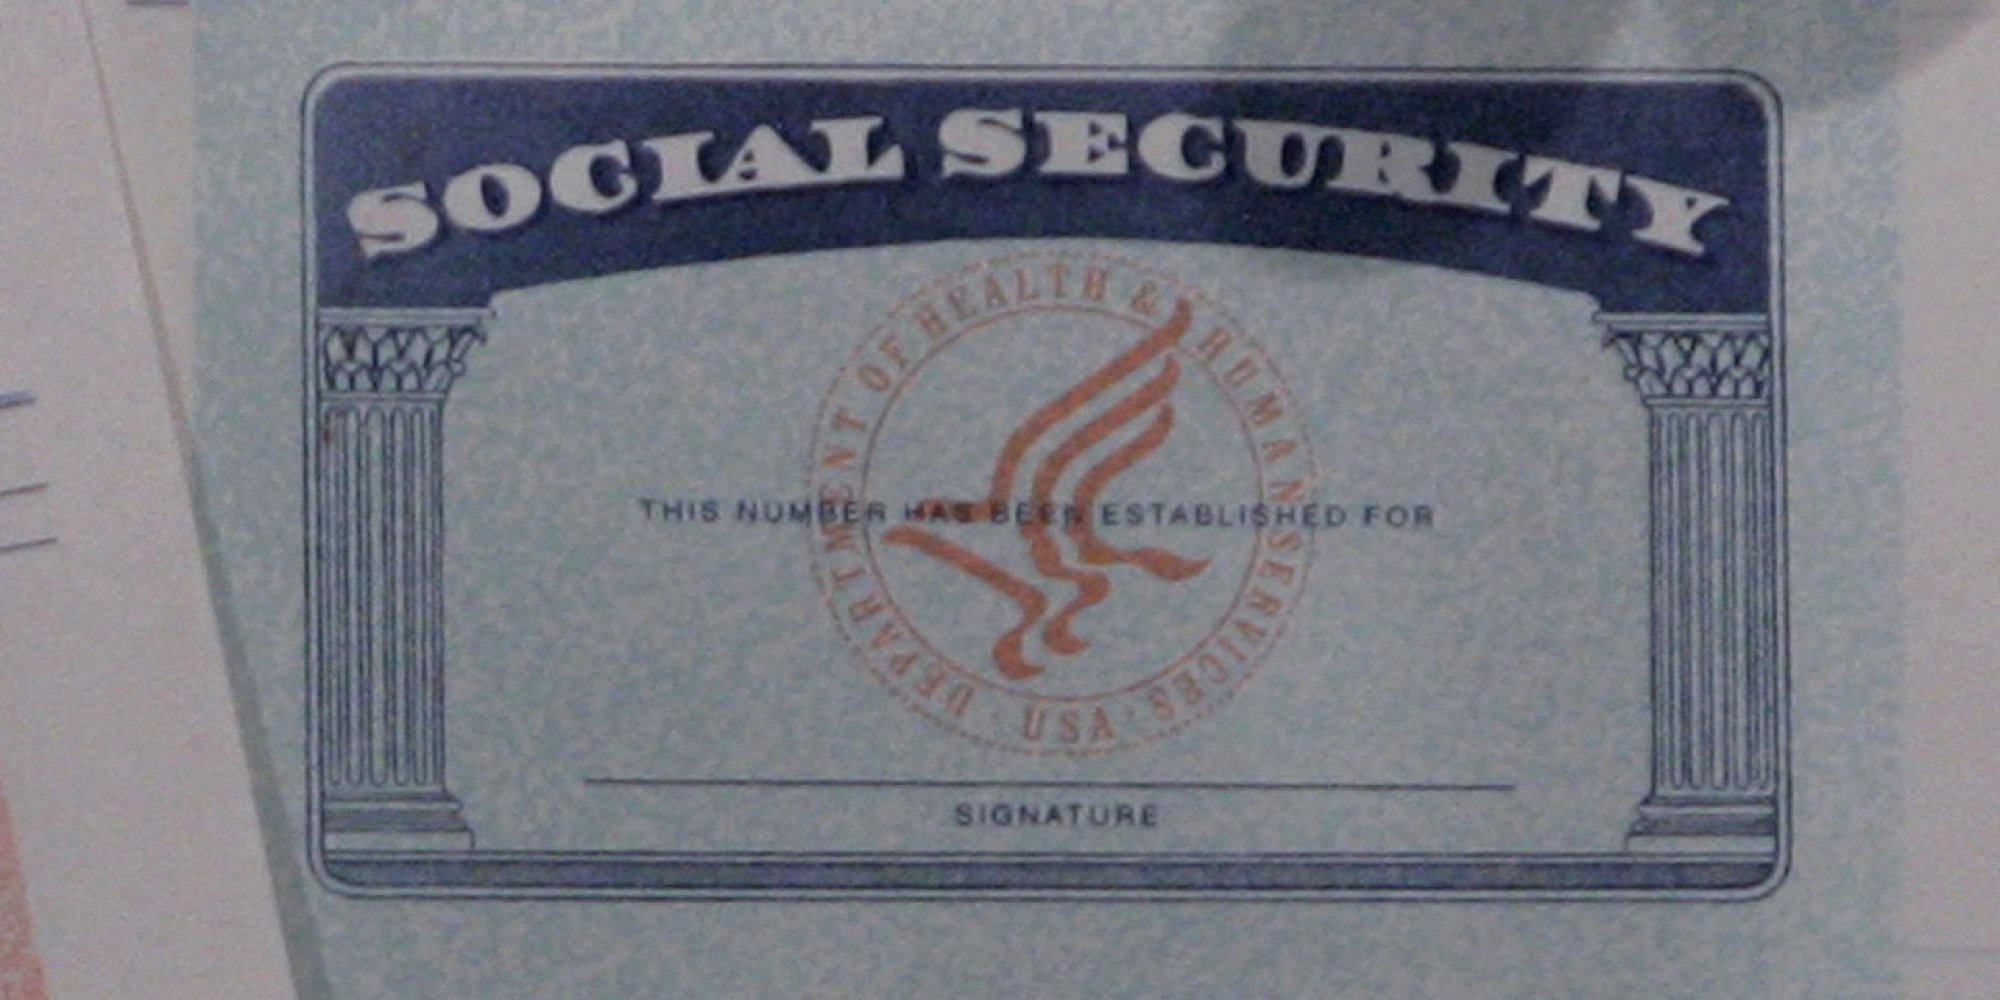 Should We Kill the social Security Number